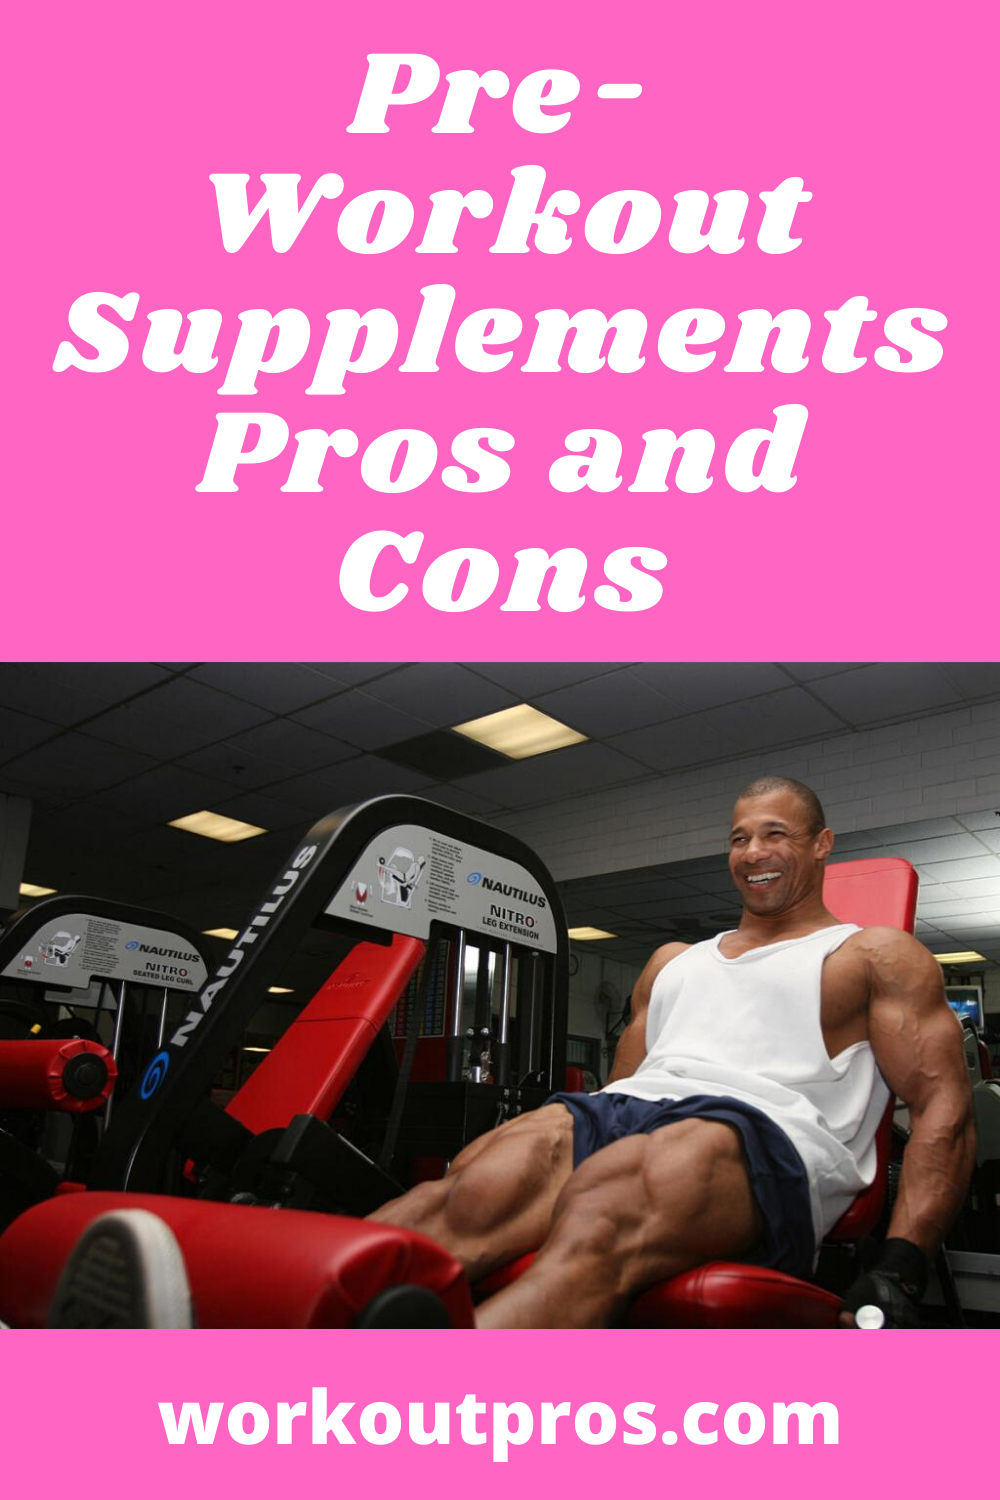 Pre Workout Supplements Pros And Cons Workout Supplements Pre Workout Supplement Workout